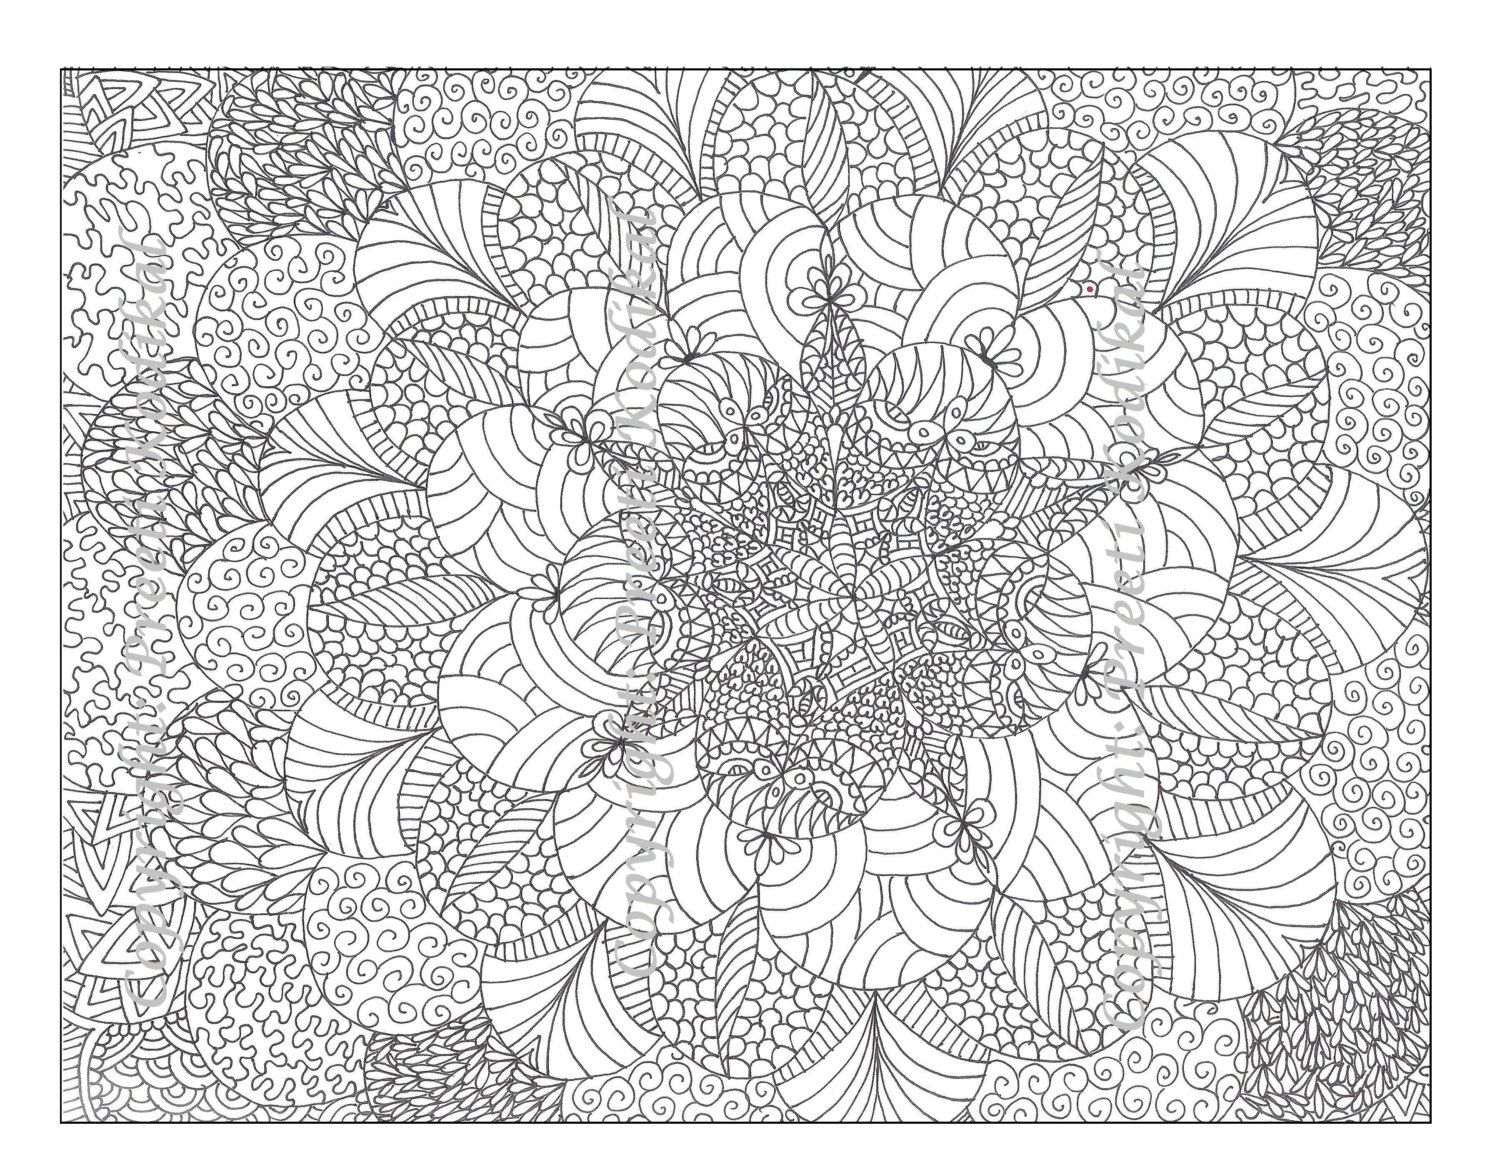 henna coloring pages pen illustration printable coloring page zentangle inspired henna or - Design Coloring Pages